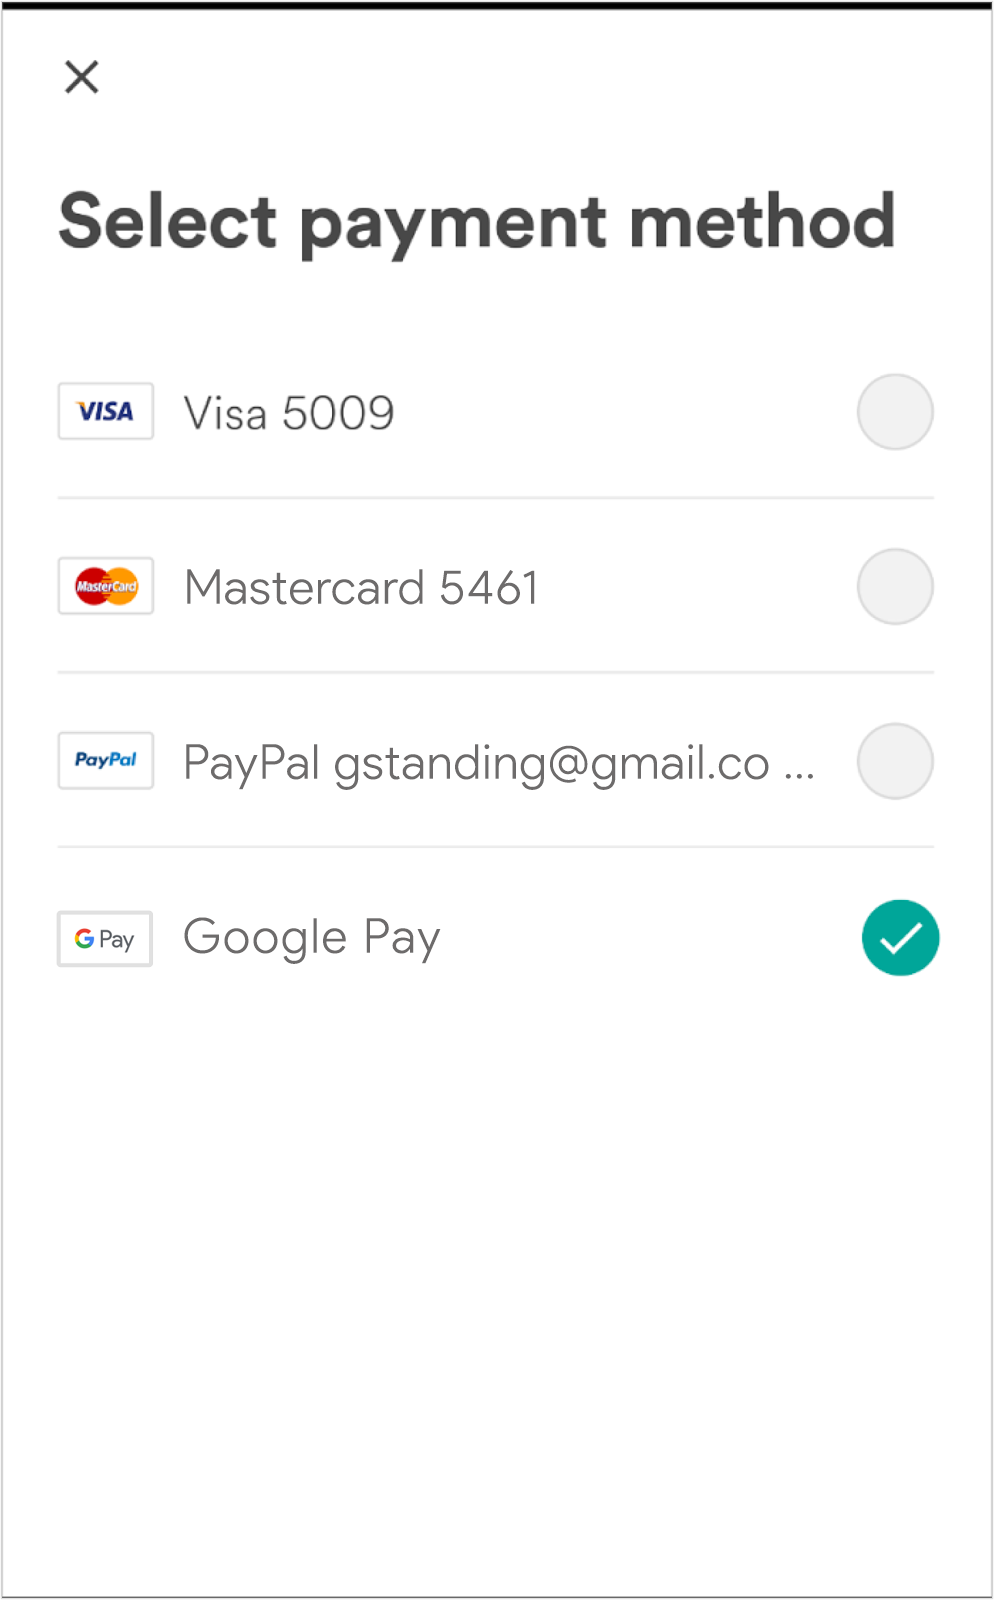 Example payment screen including Google Pay as one of multiple supported payment methods